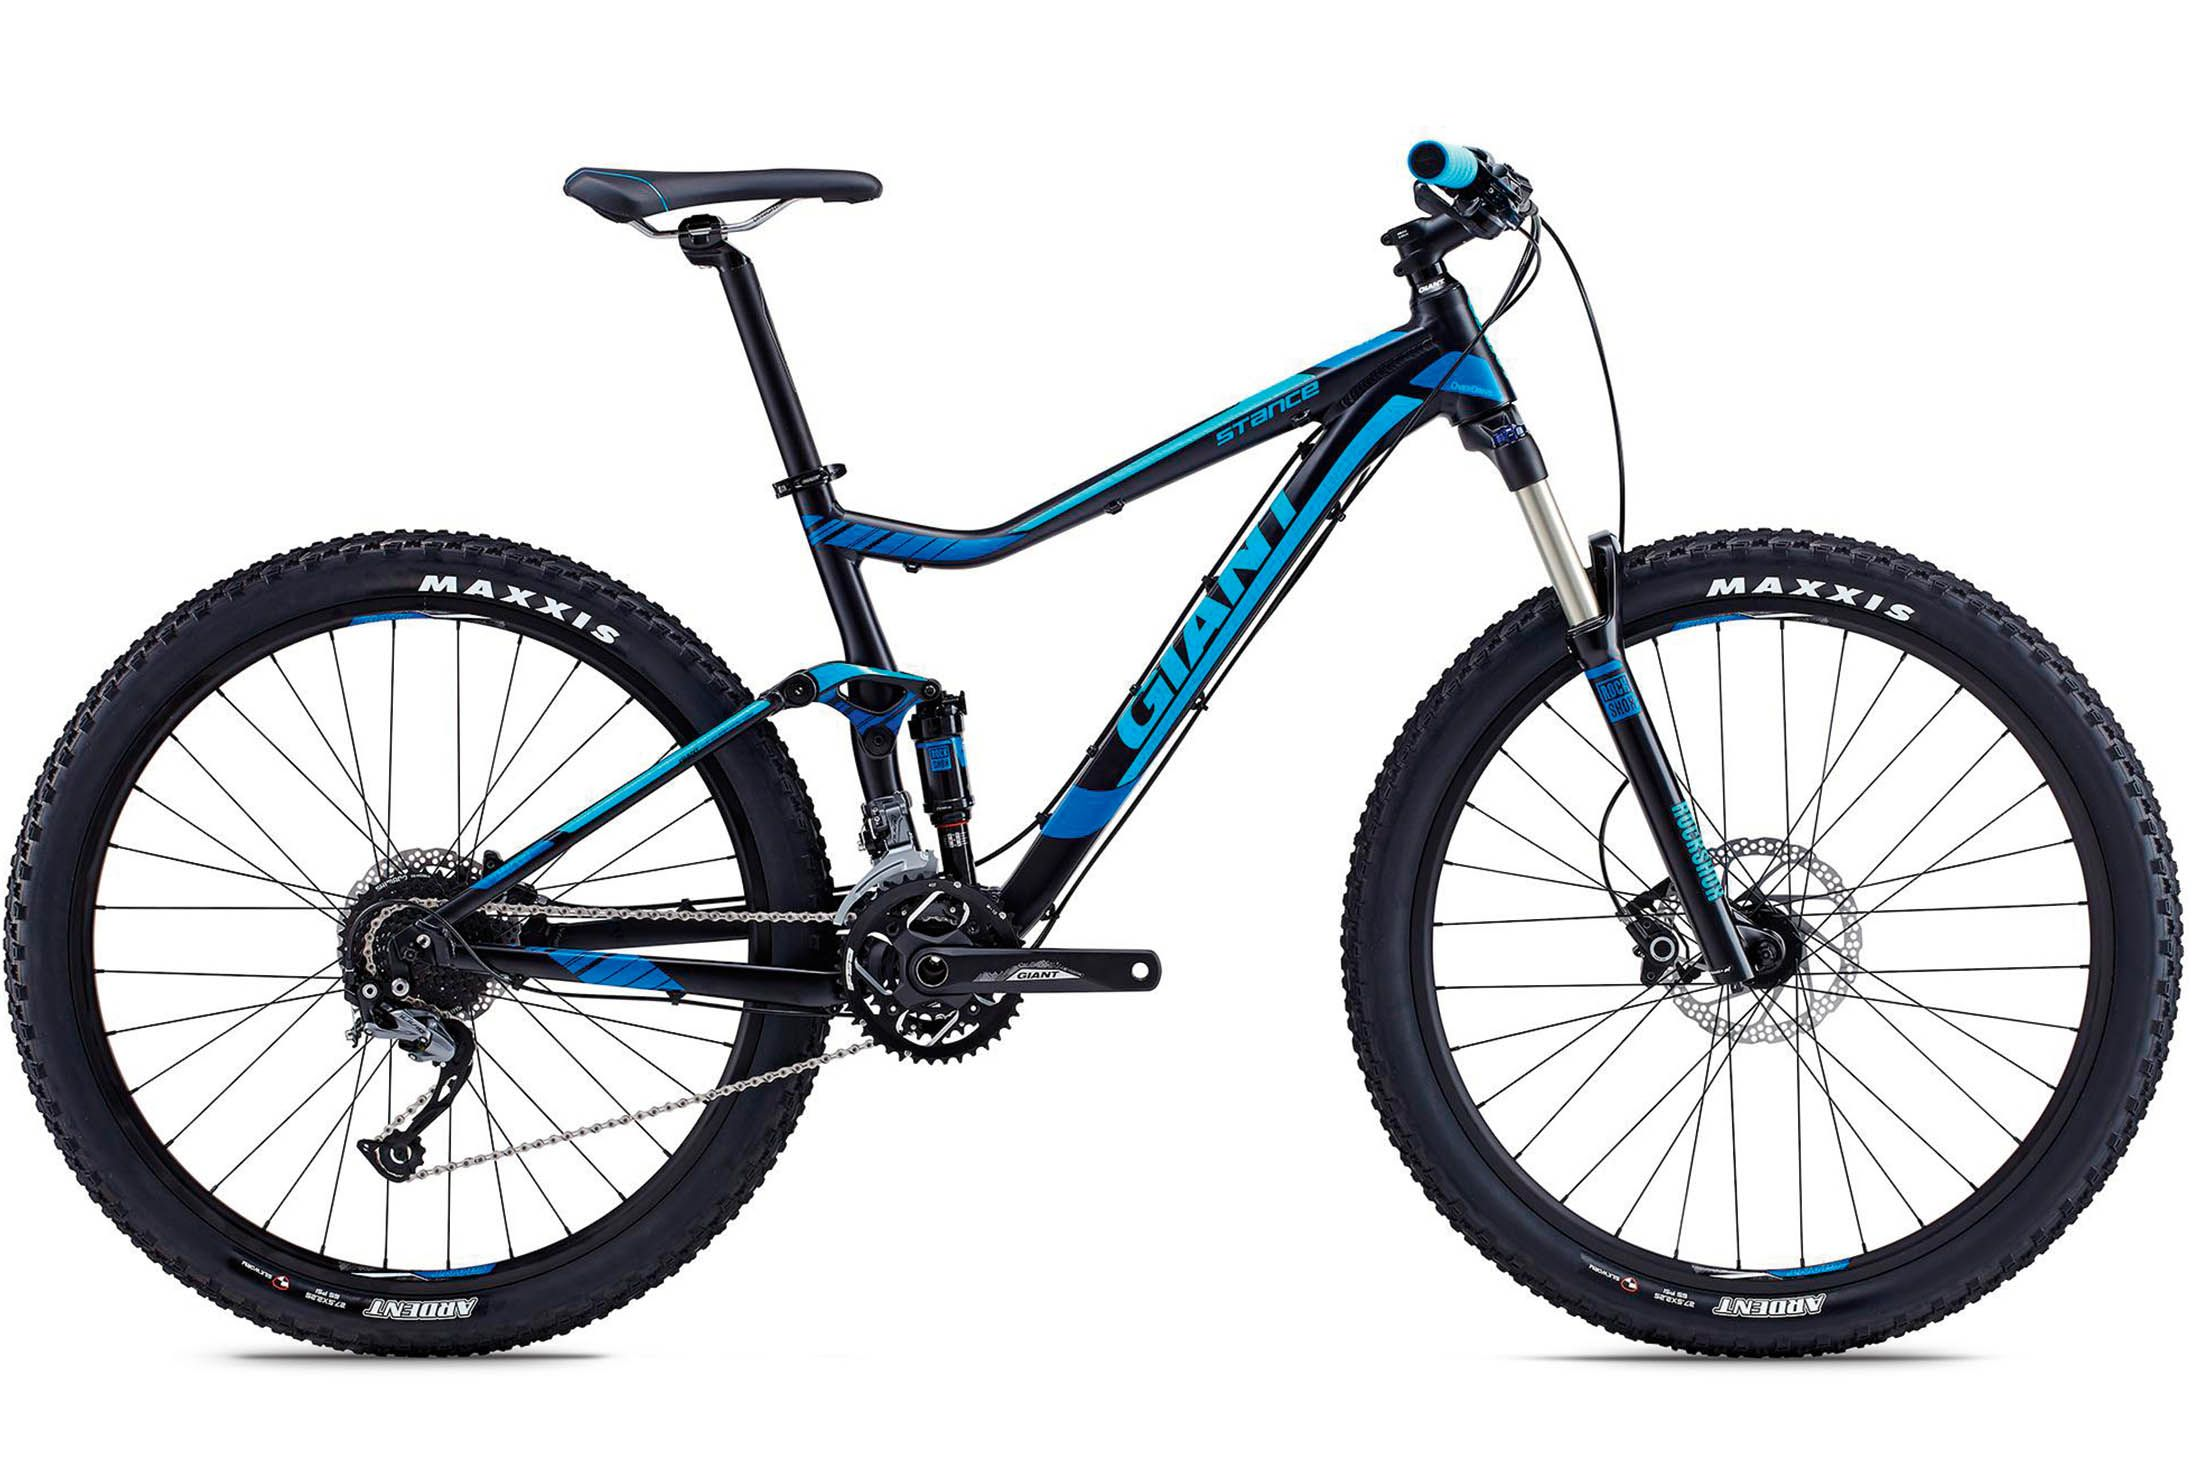 The Best Mountain Bikes Under 500 Giant Bicycle Full